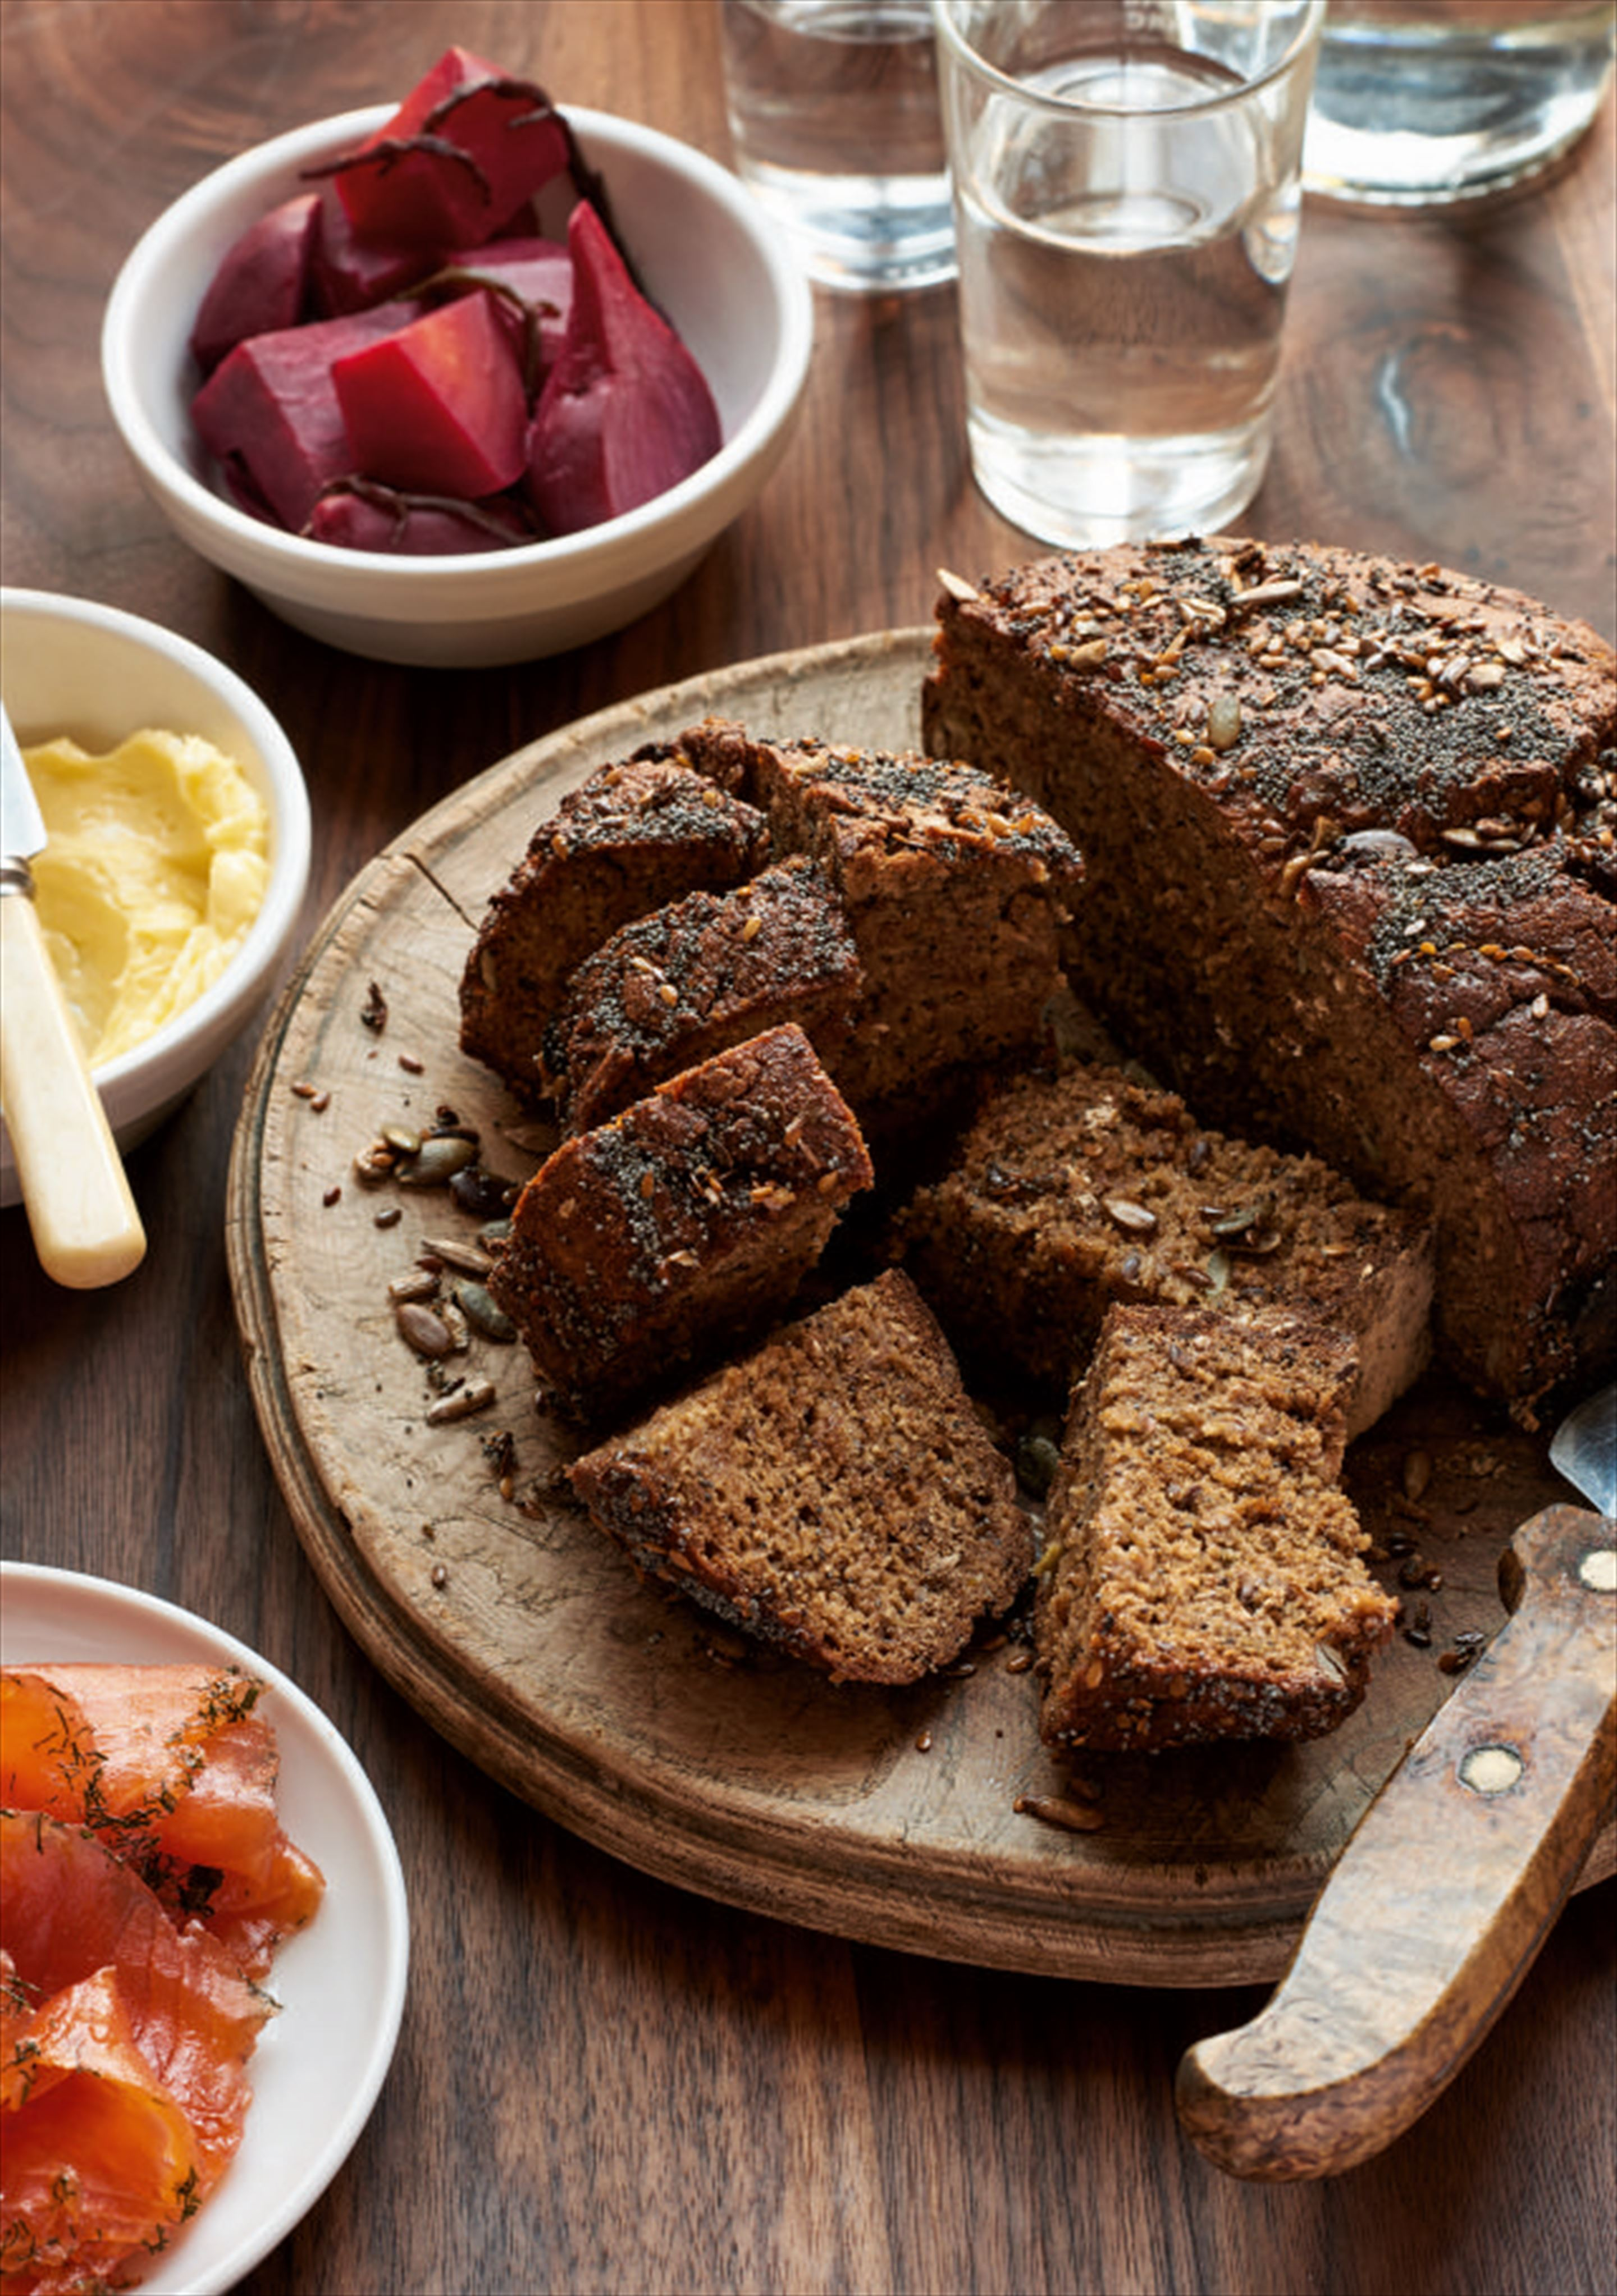 Seeded rye and honey soda bread